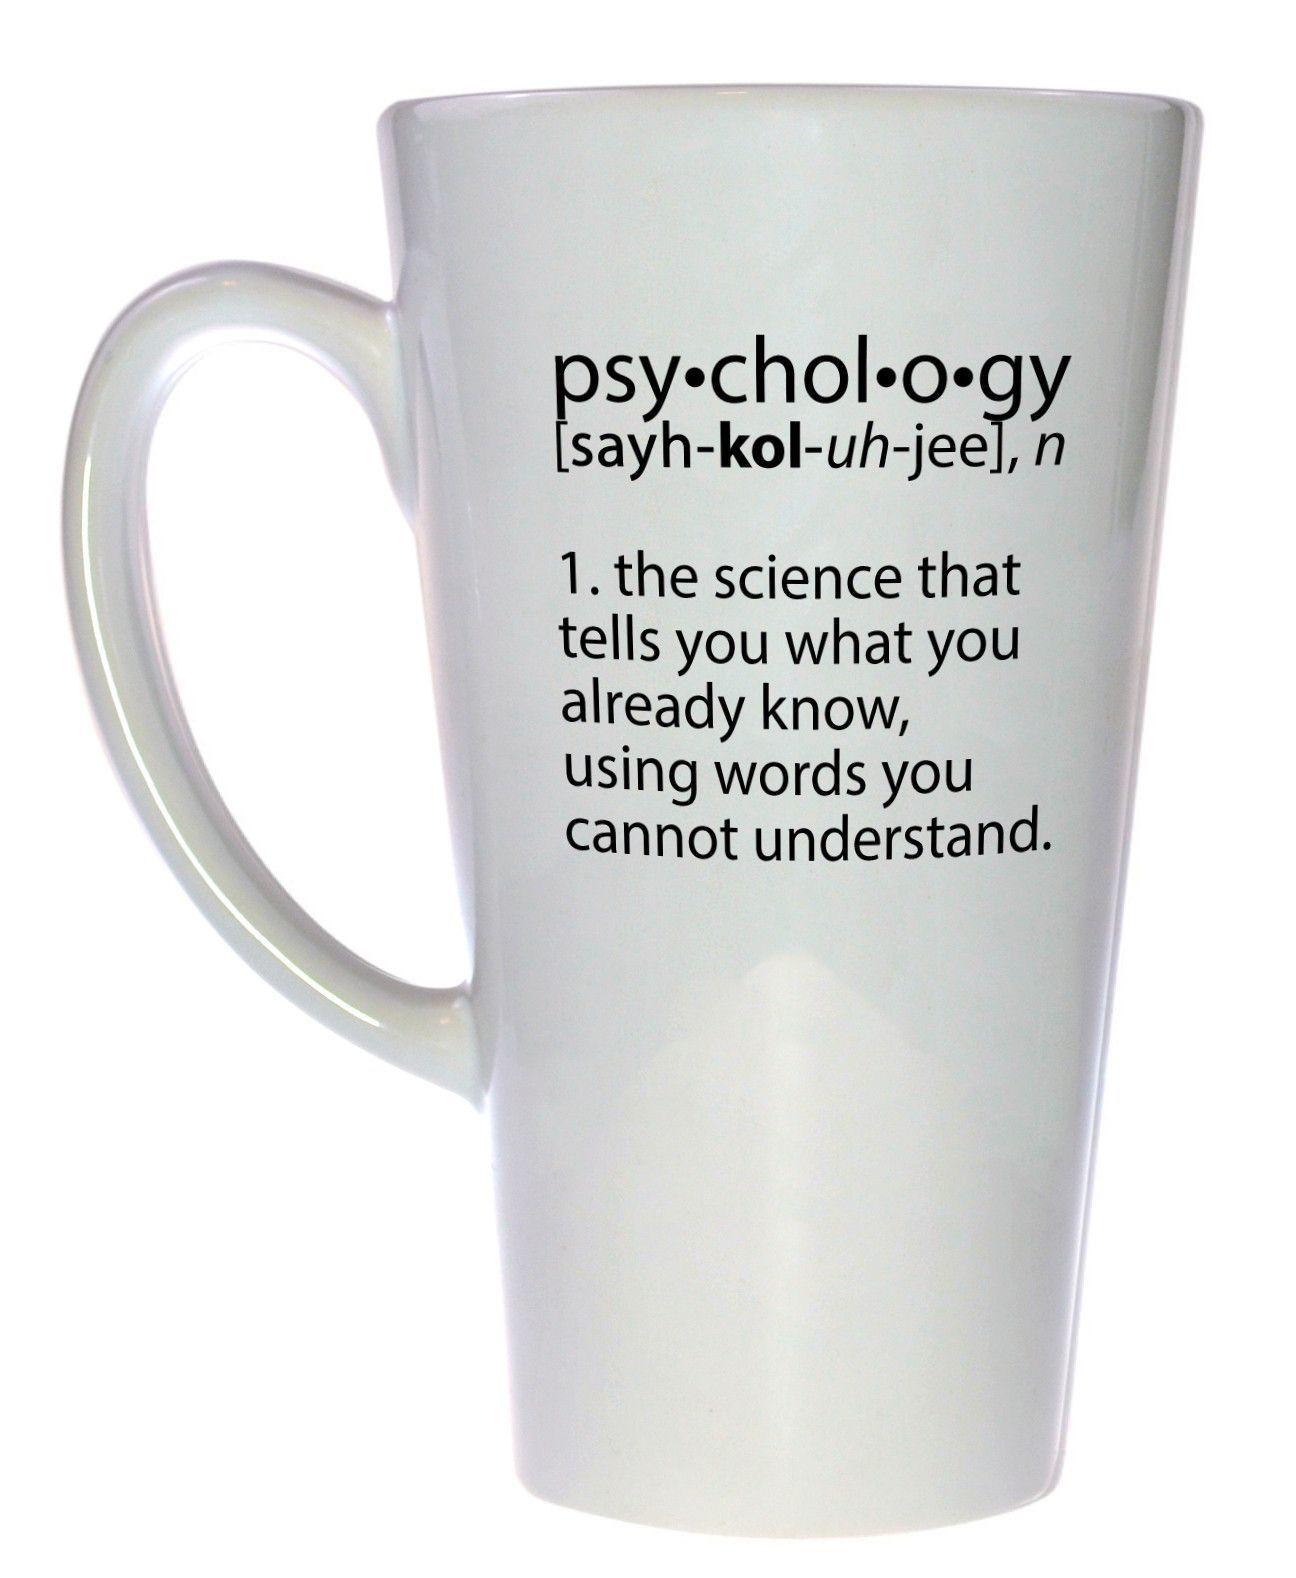 psychology definition coffee or tea mug latte size coffee nerds